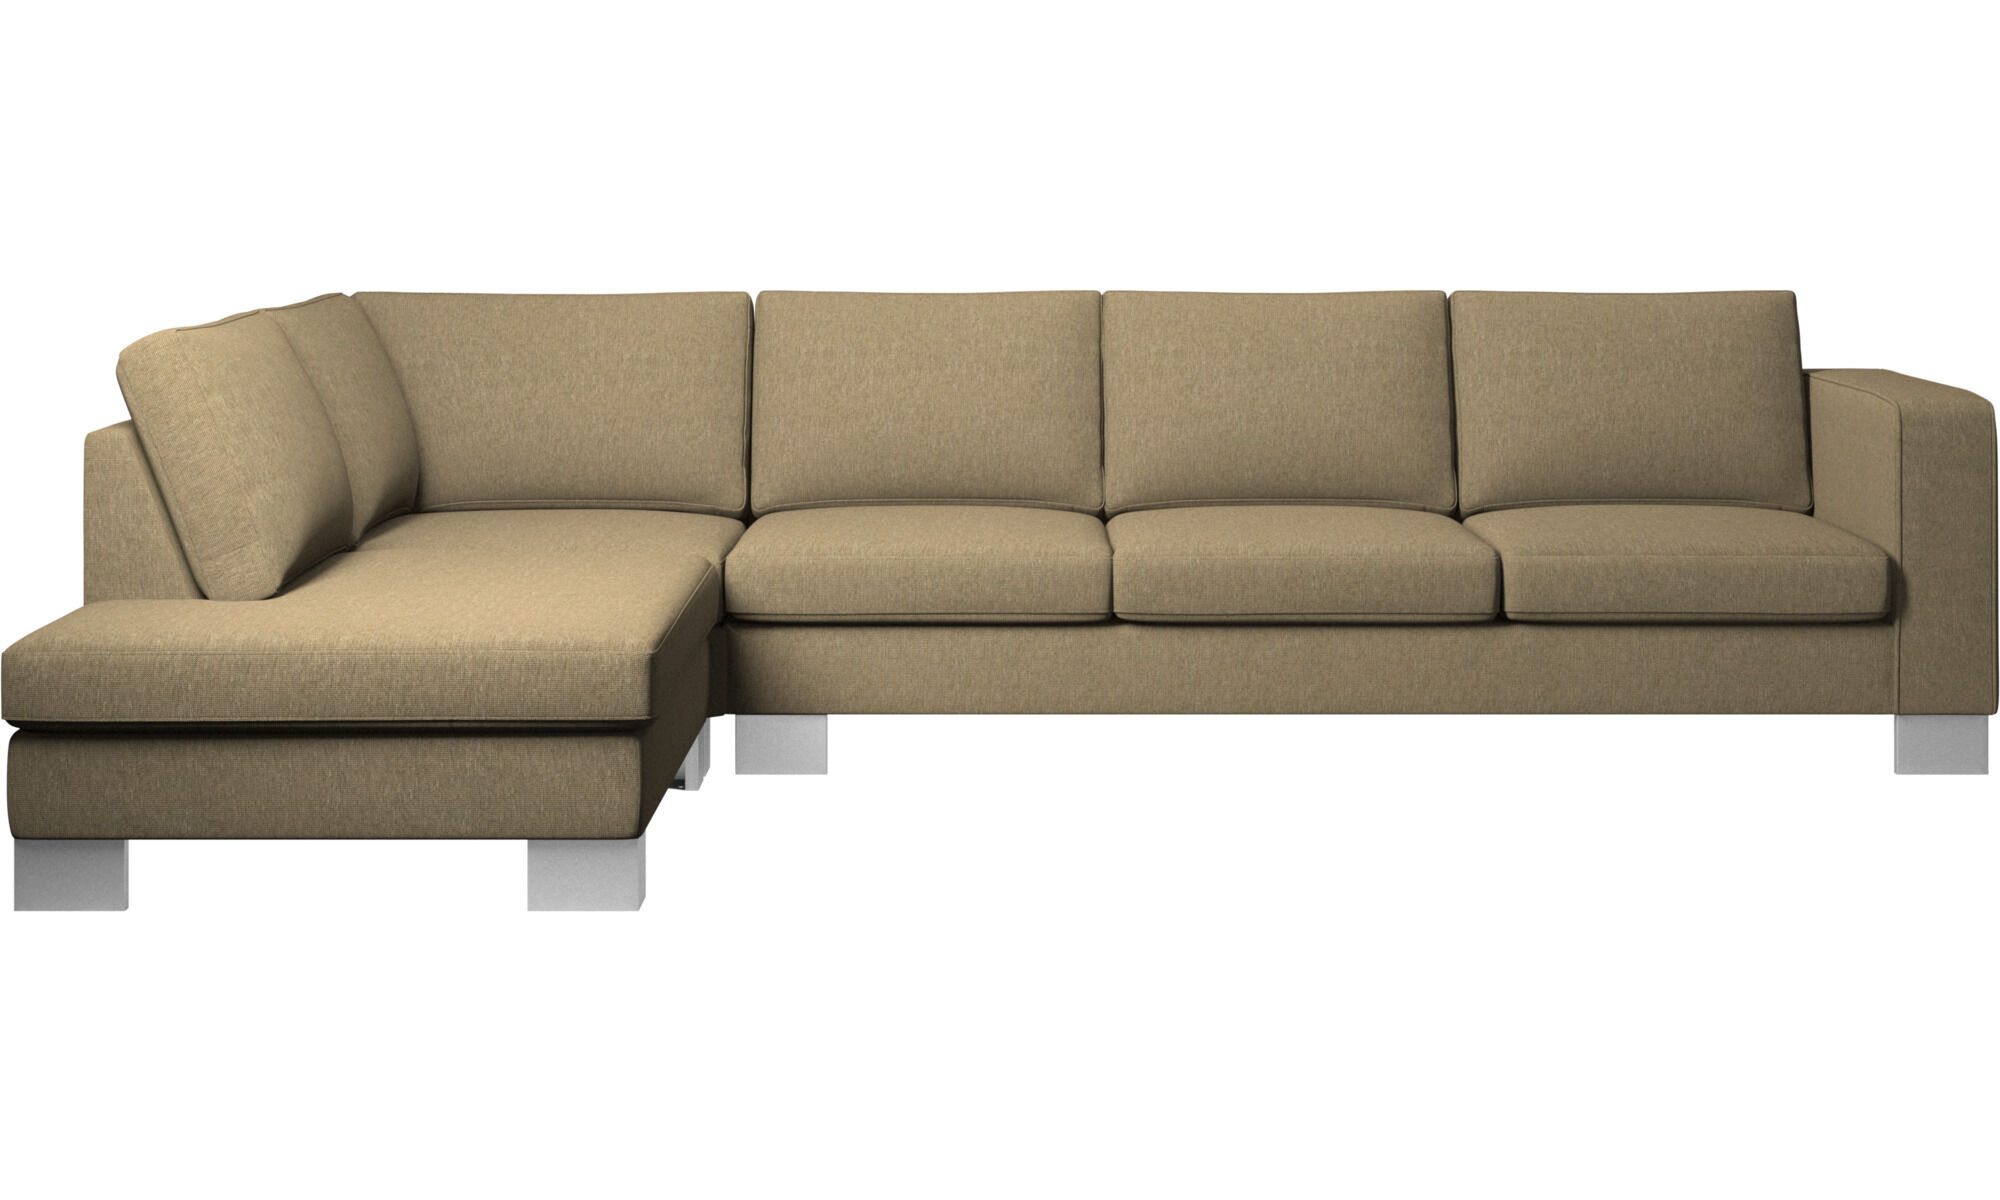 Contemporary Furniture   Modern Furniture   BoConcept Sofas with open end   Indivi 2 corner sofa with lounging unit   Green    Fabric